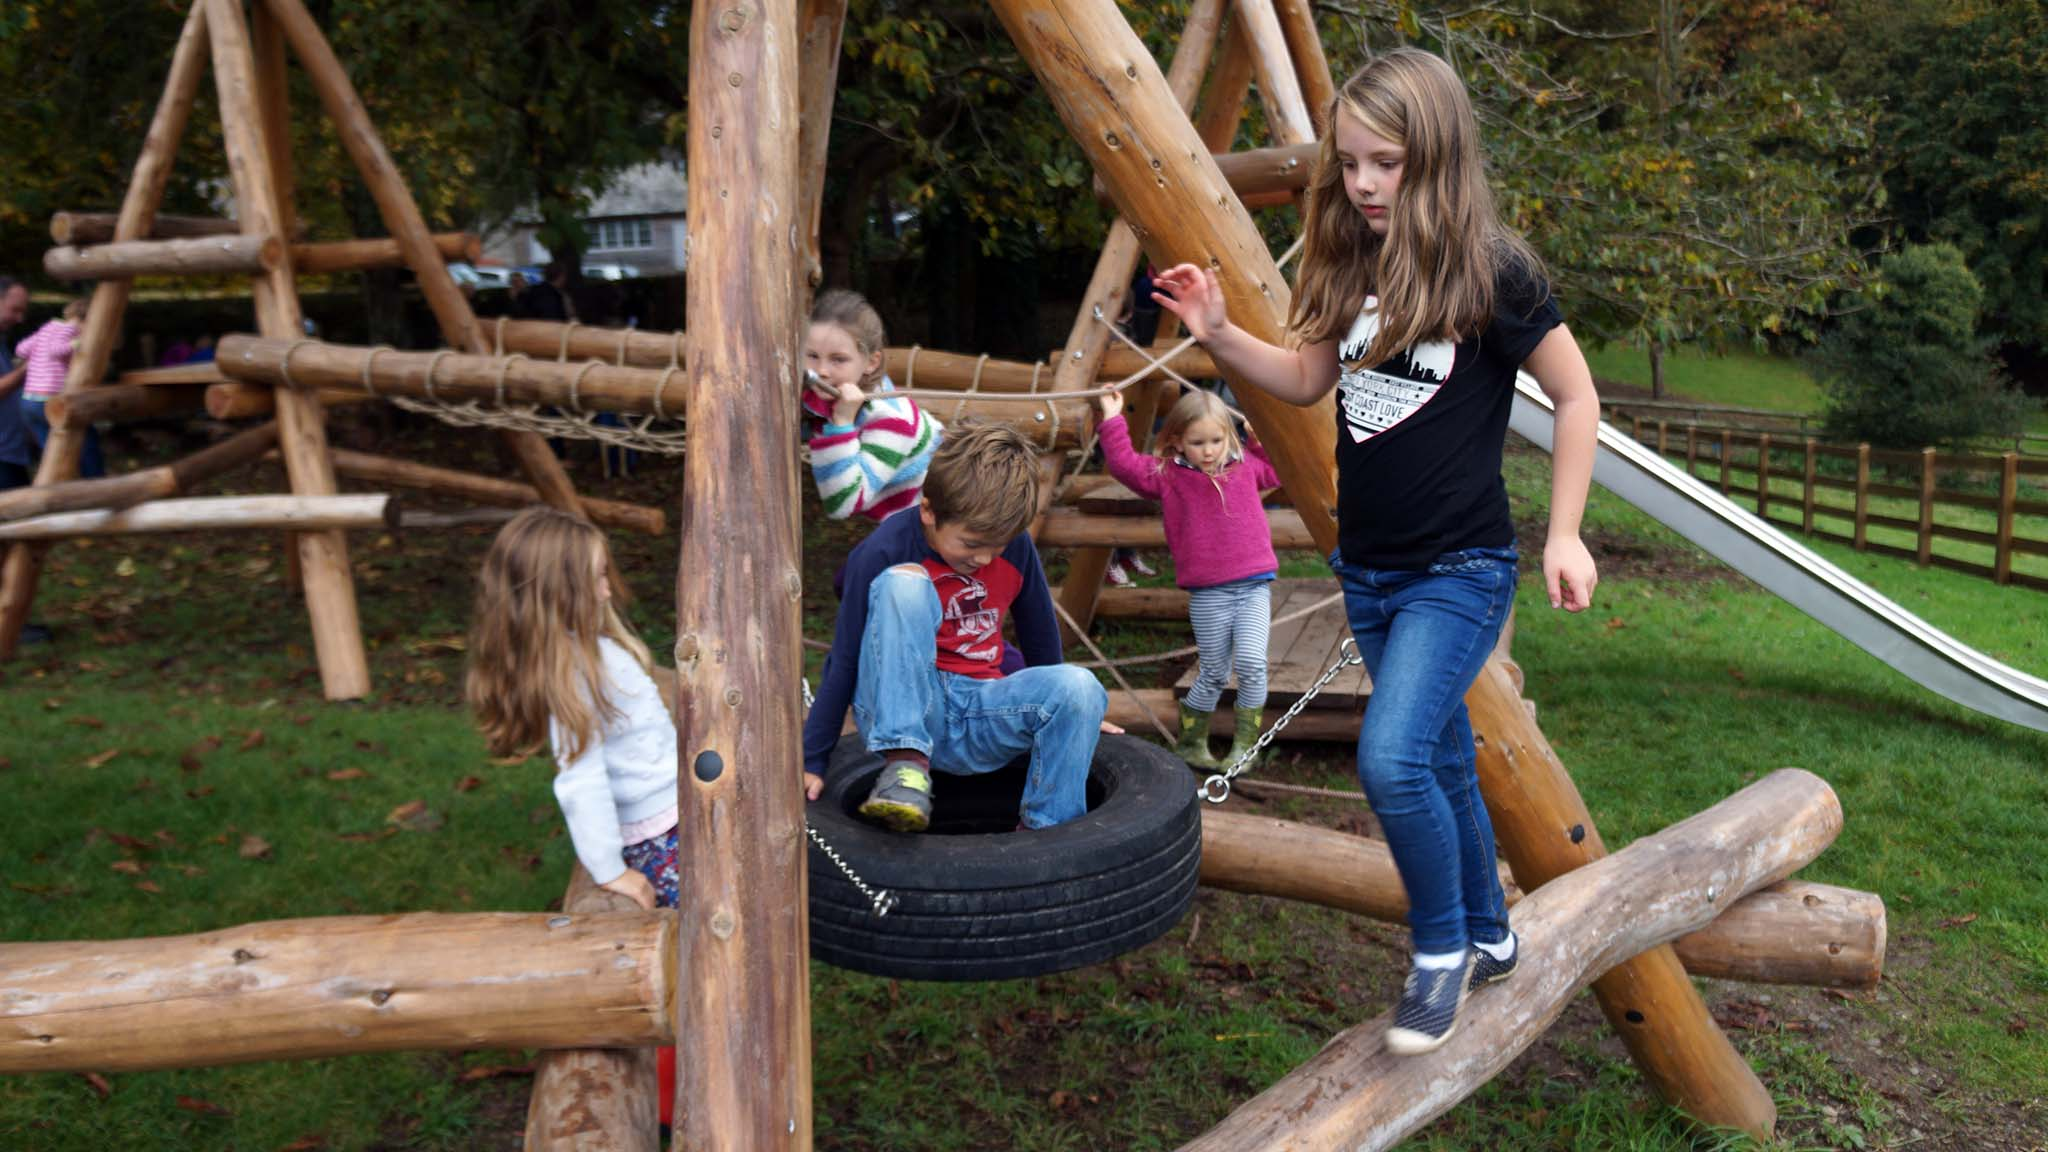 Camp Dartington visitors can enjoy a childrens play facility on the estate